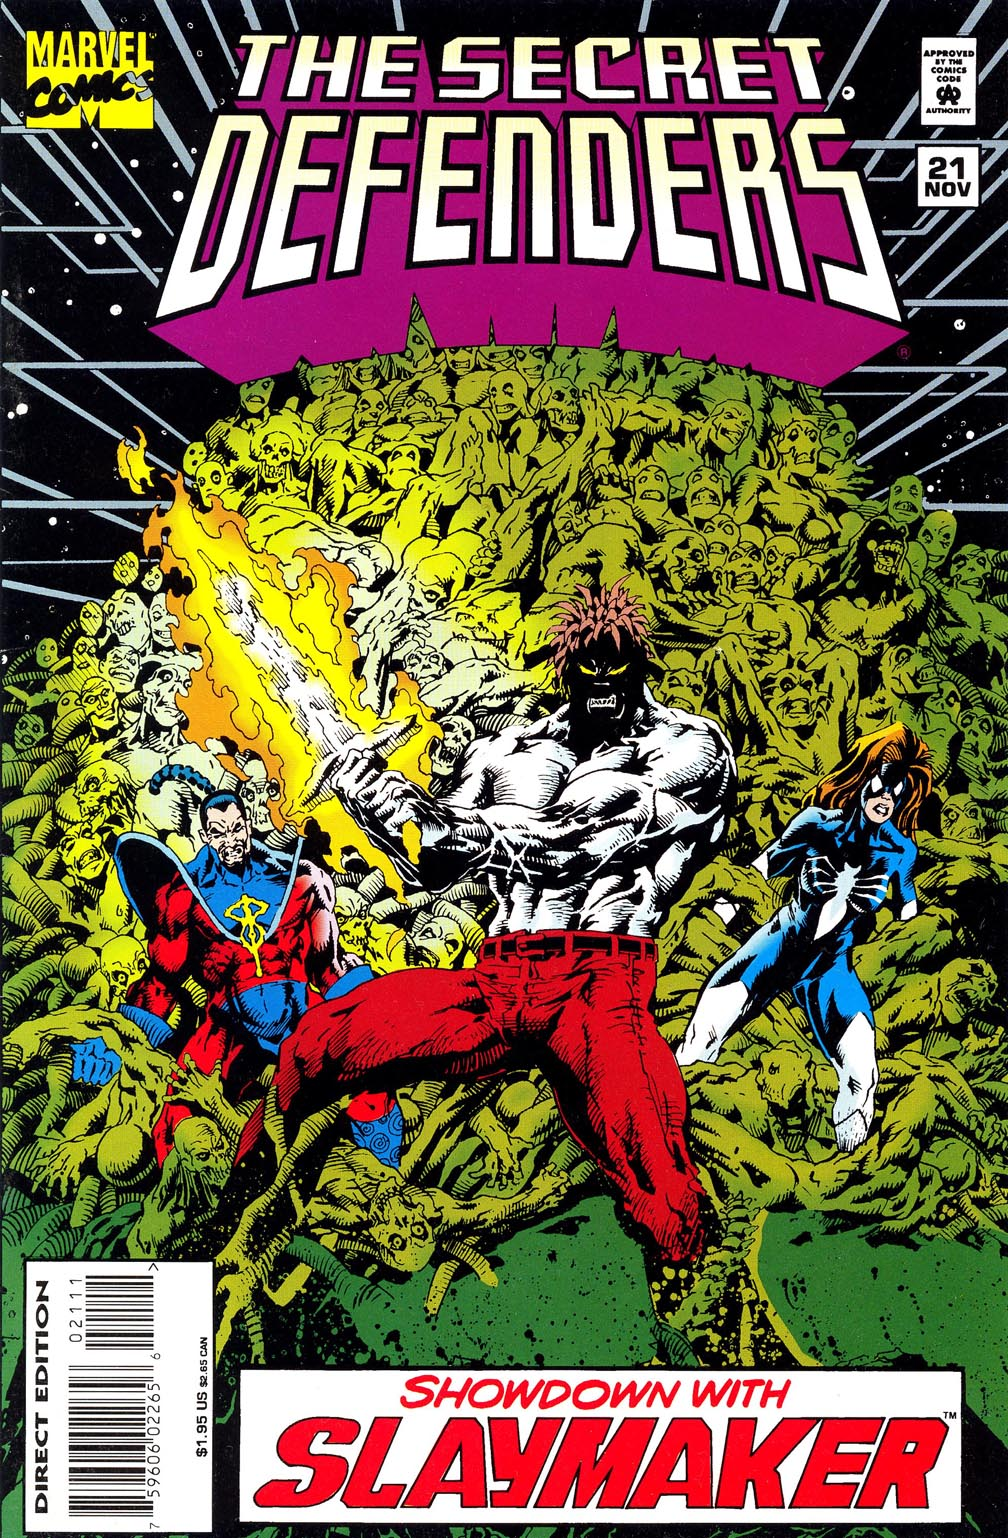 Read online Secret Defenders comic -  Issue #21 - 1